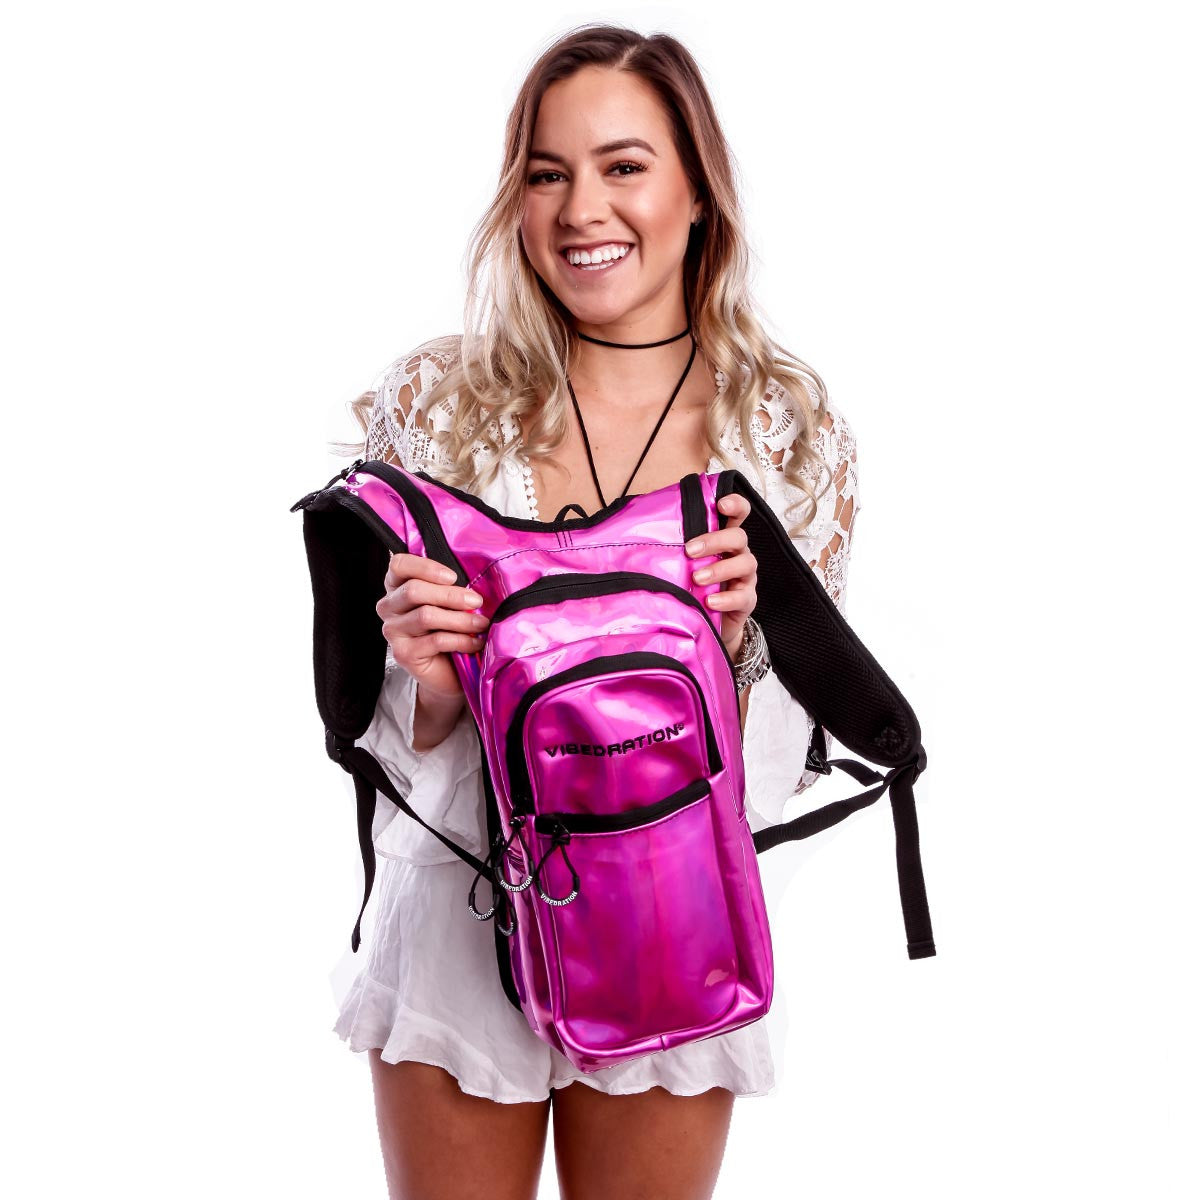 Female holding Pink holographic hydration pack